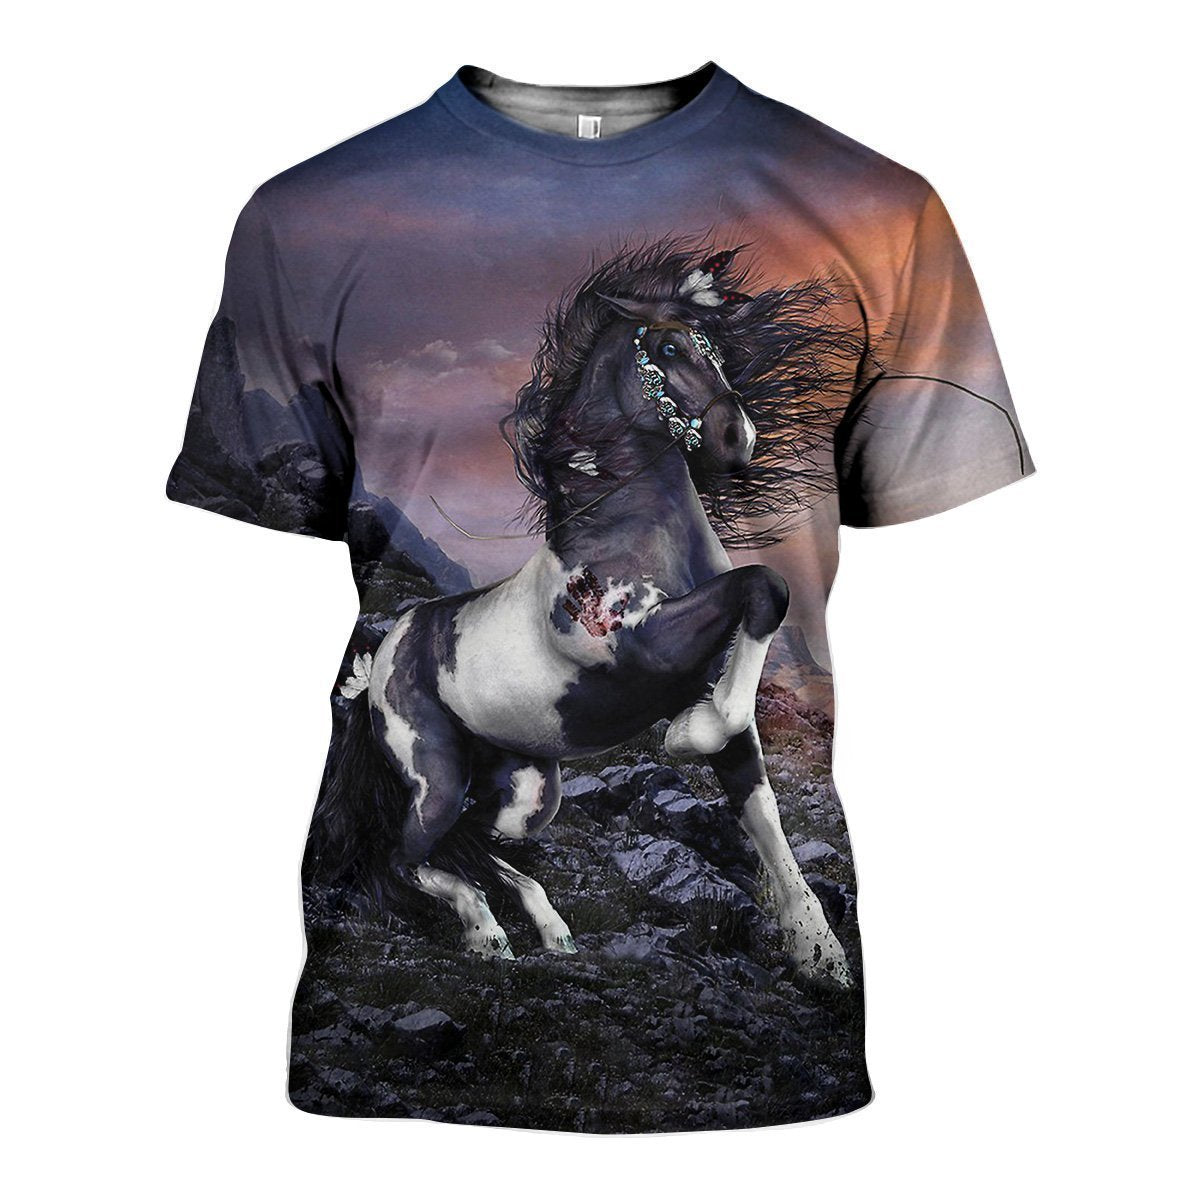 3D All Over Printed Horse Shirts and Shorts - Amaze Style™